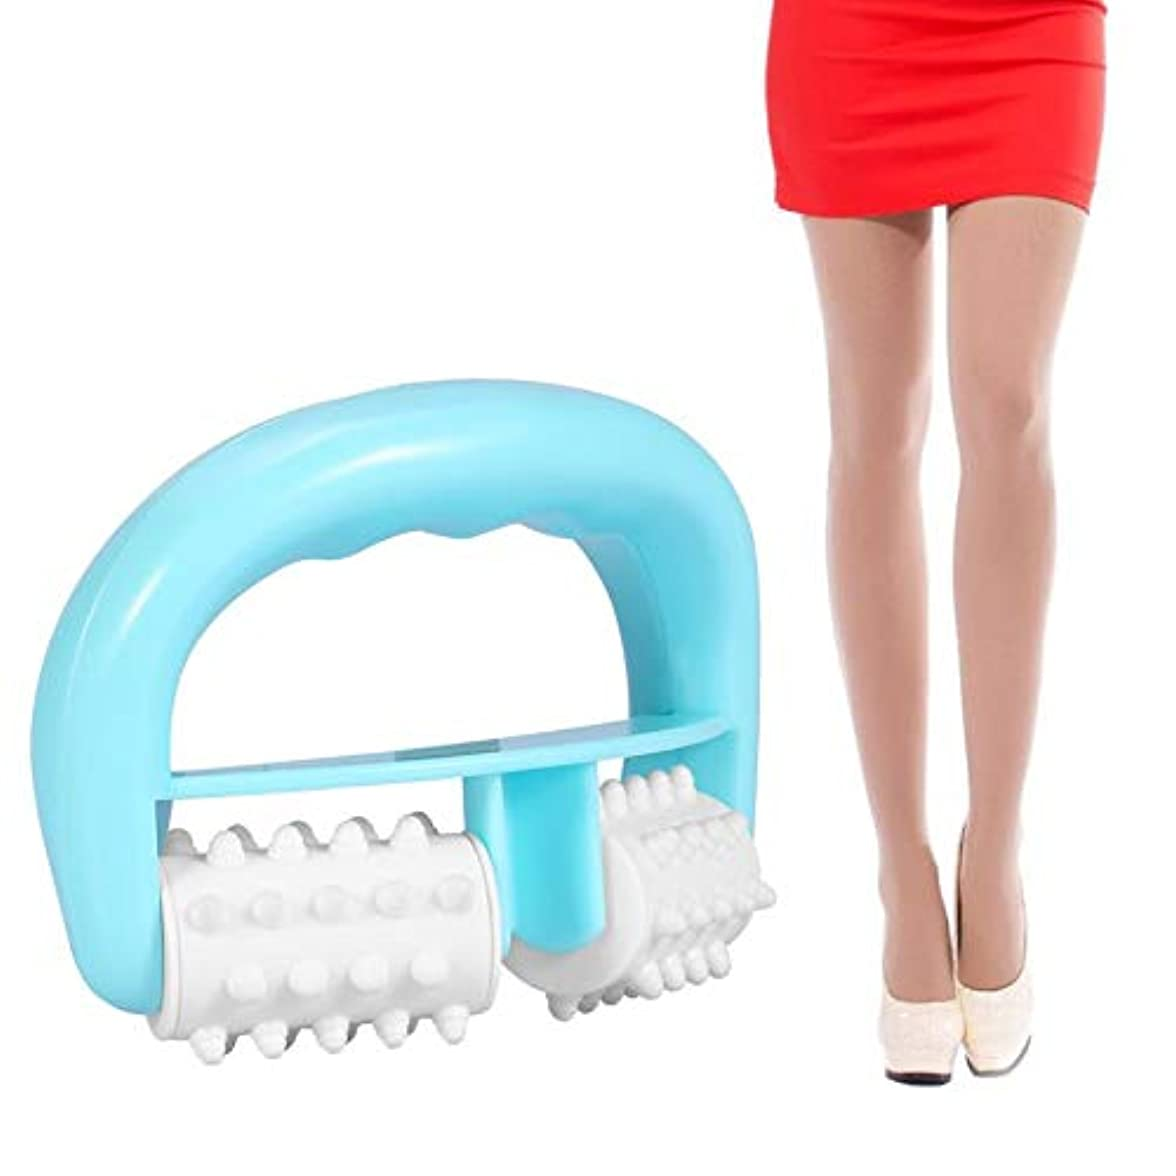 拘束ホラー証拠Handle Cell Roller Massager Mini Wheel Ball Slimming Body Leg Foot Hand Neck Fat Cellulite Control Pain Relief...